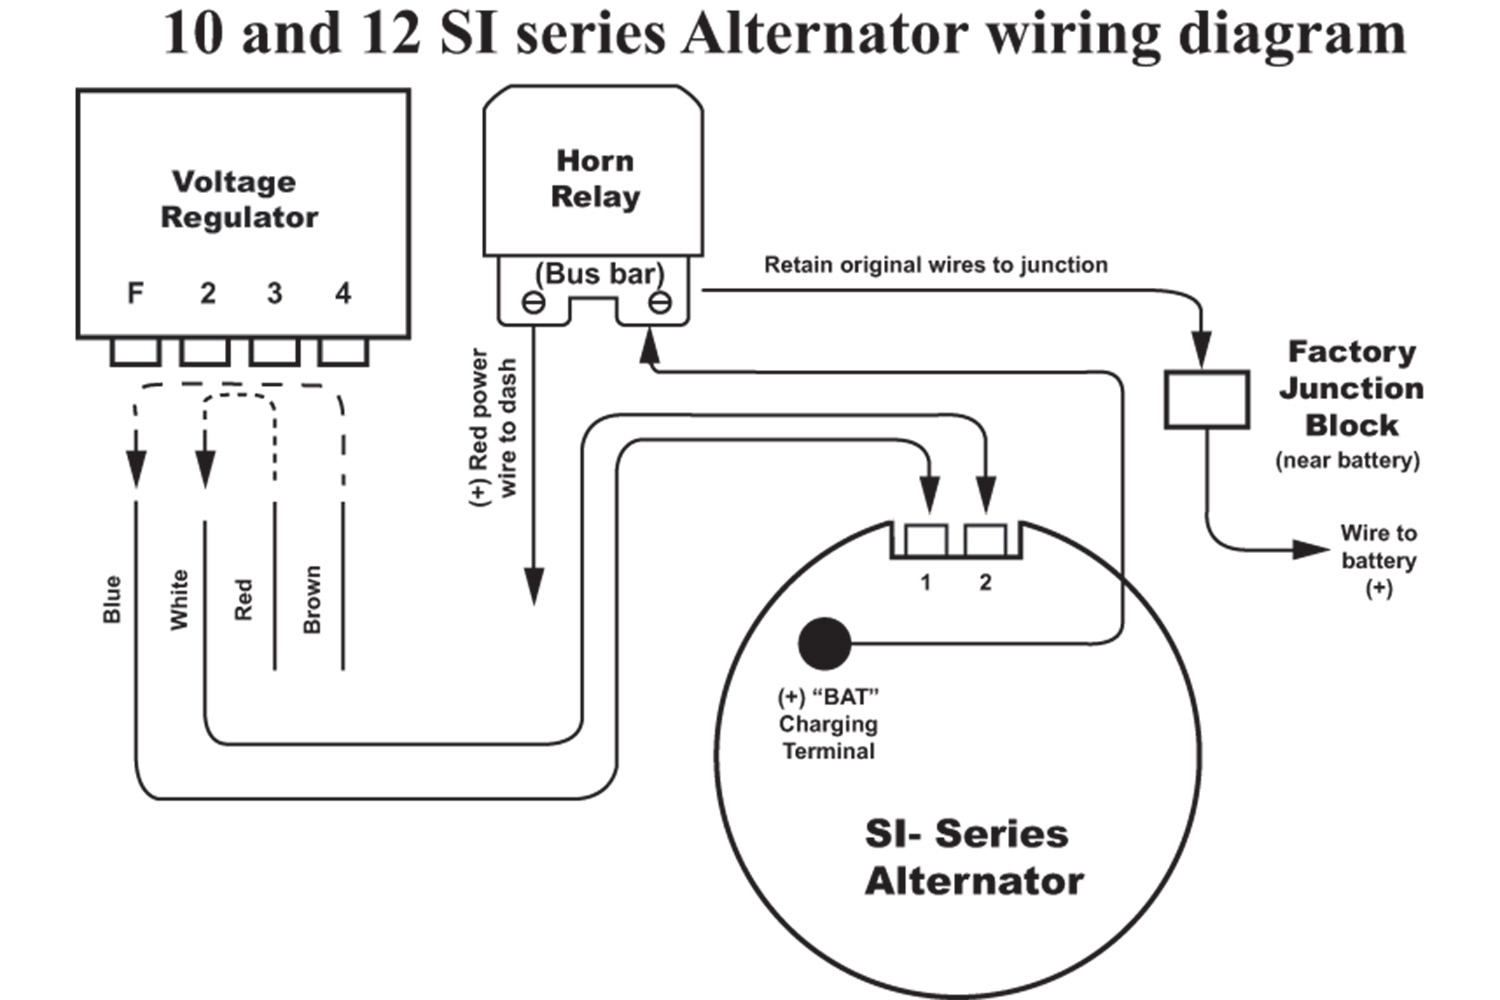 12si wiring diagram wiring library relay wiring diagram cs144 wiring diagram 20 wiring diagram images